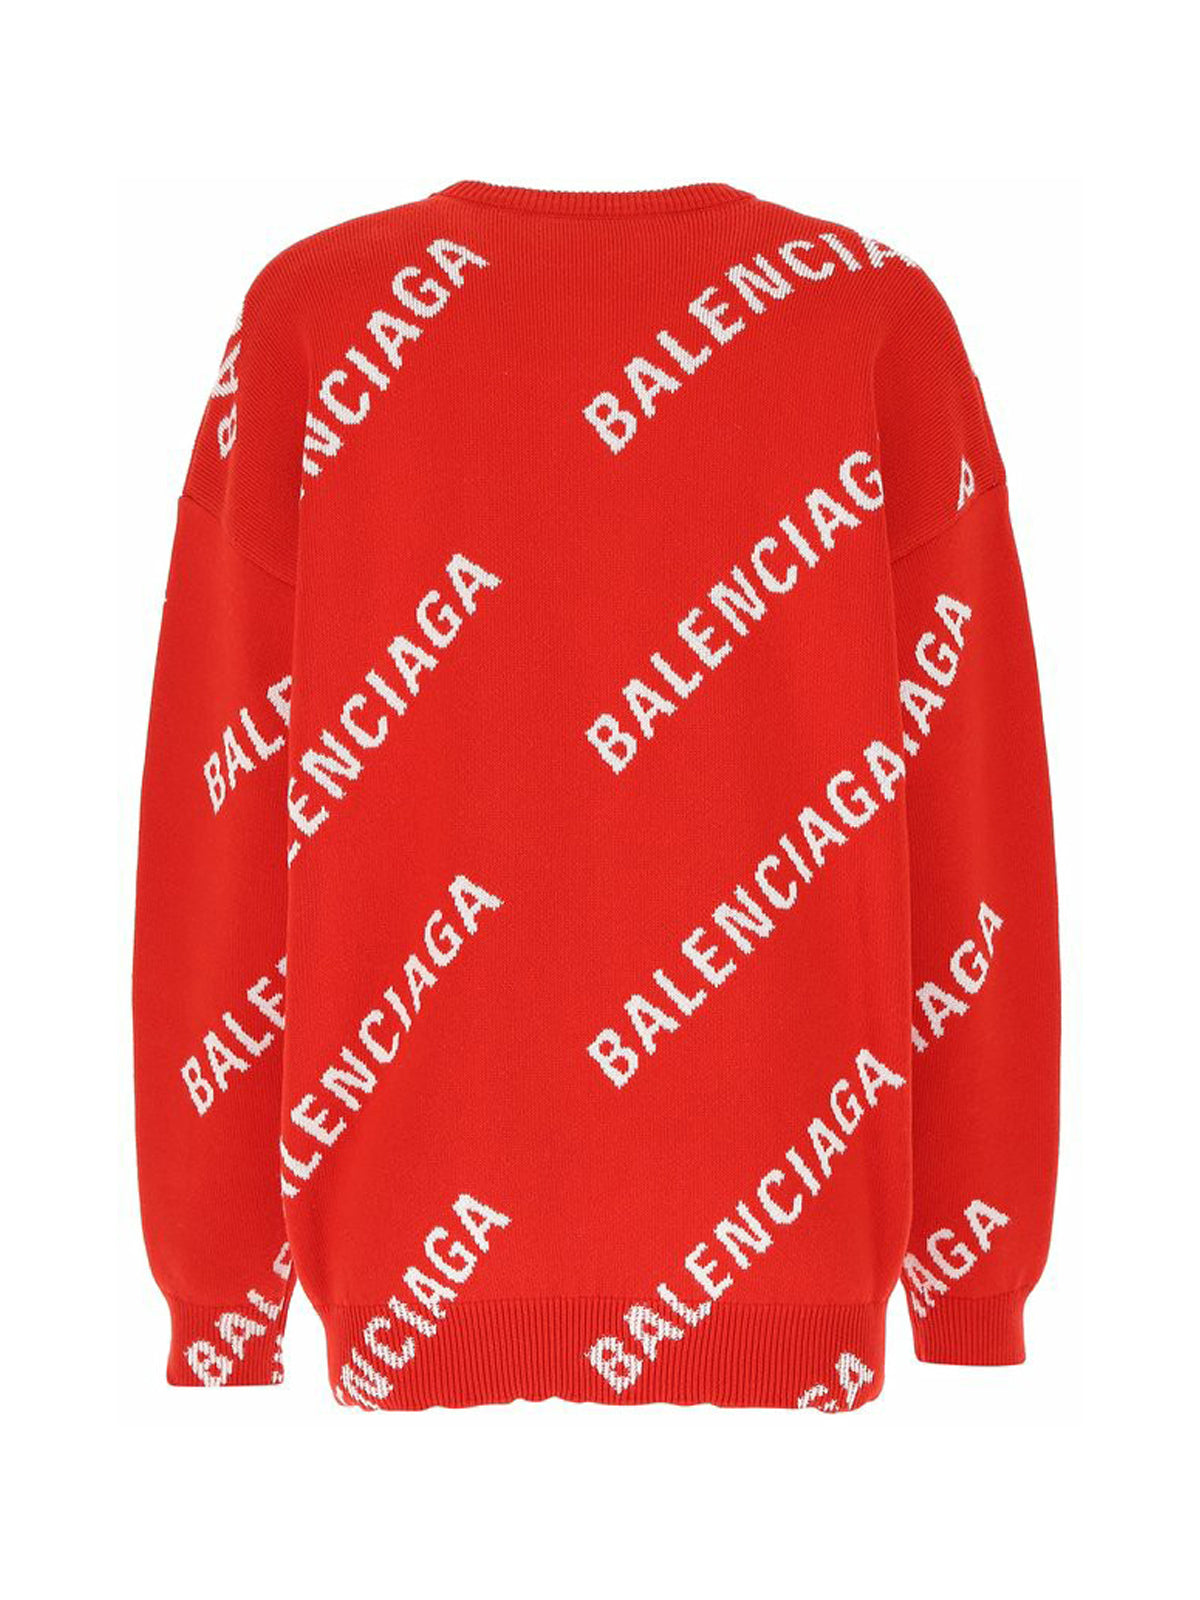 All Over Logo Knit Sweater